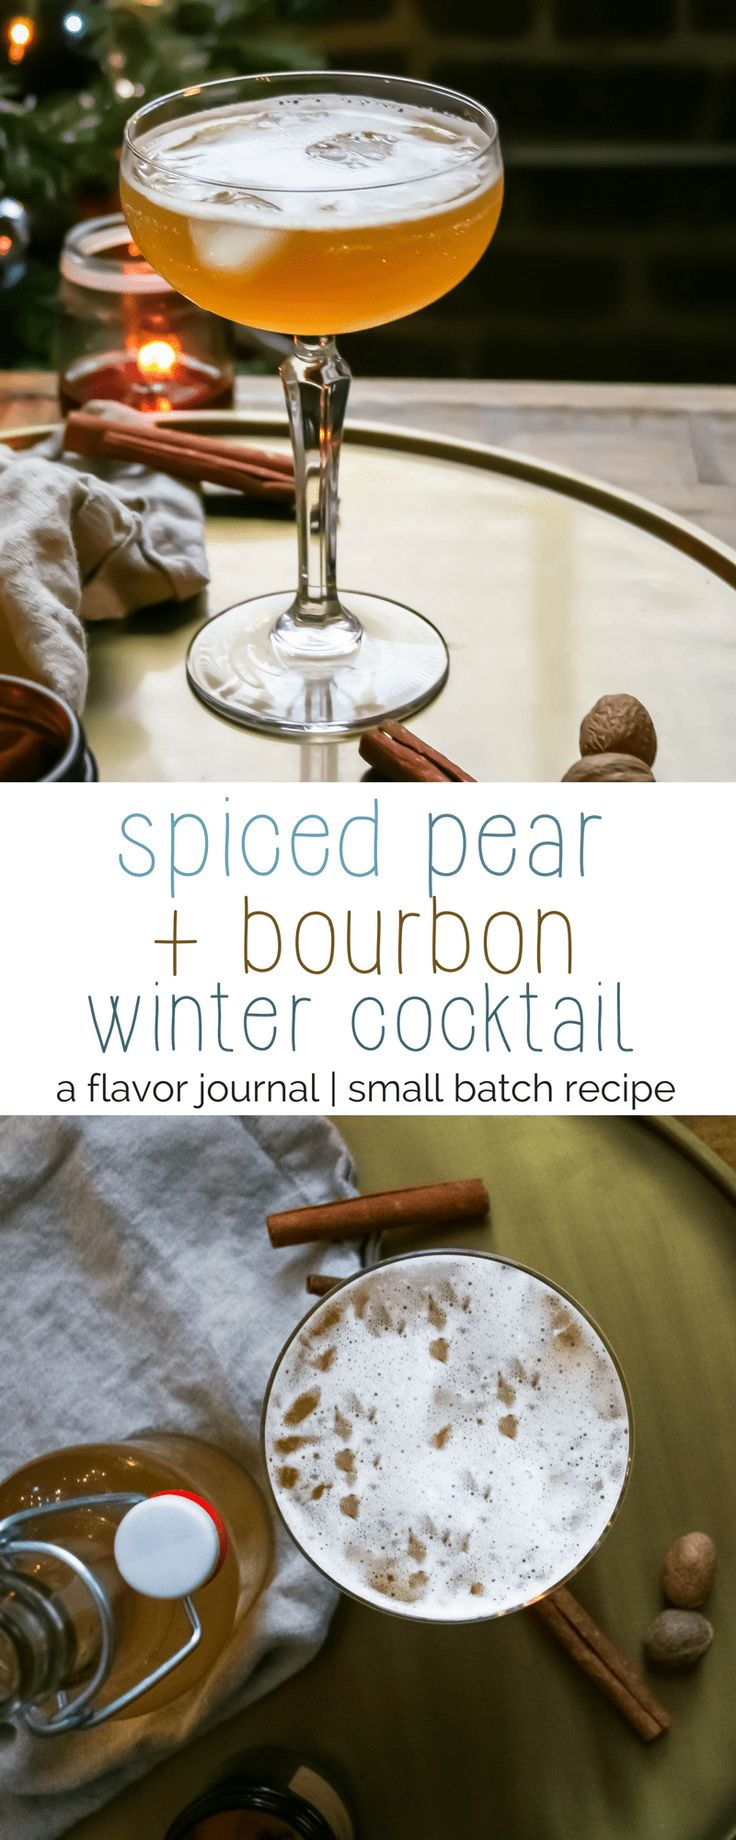 cocktails for two! warm notes of cinnamon play with pear, fresh orange, and apple brandy flavors before mixing with your choice of bourbon to provide the ultimate winter warmer bourbon cocktail! spiced pear and bourbon cocktail   a flavor journal food blog small batch recipe